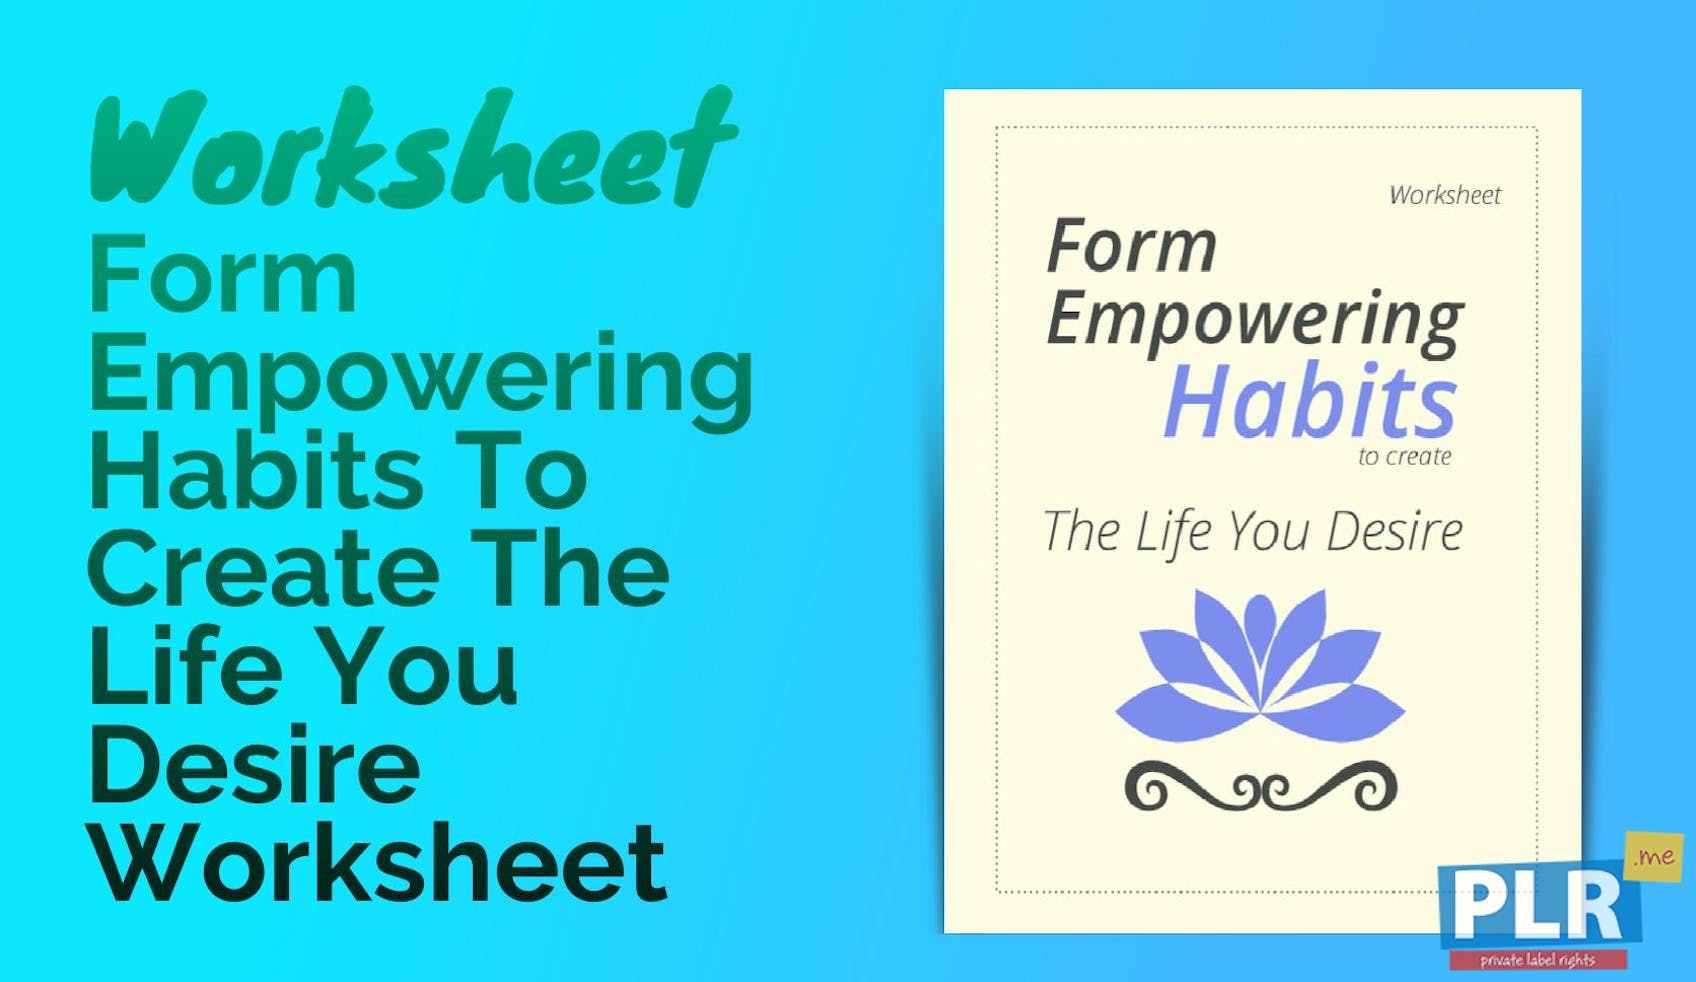 PLR Worksheets - Form Empowering Habits To Create The Life You ...